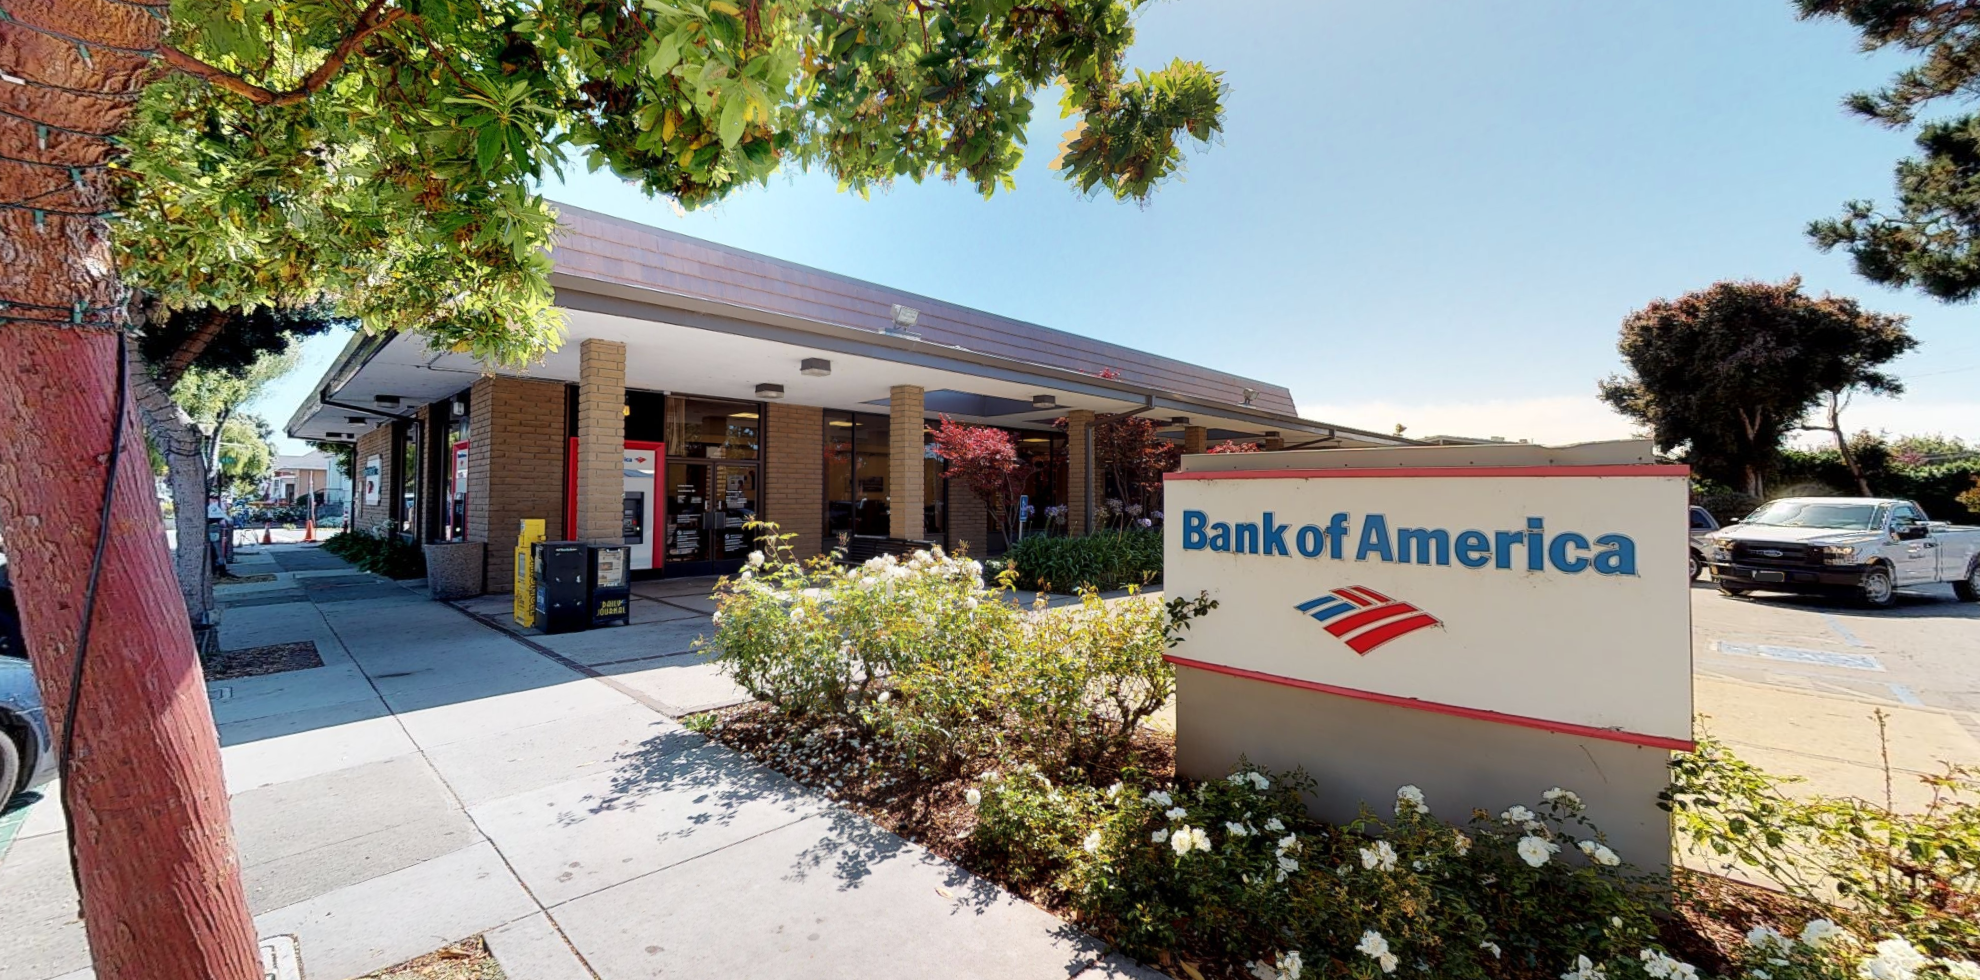 Bank of America financial center with walk-up ATM | 620 Main St, Half Moon Bay, CA 94019